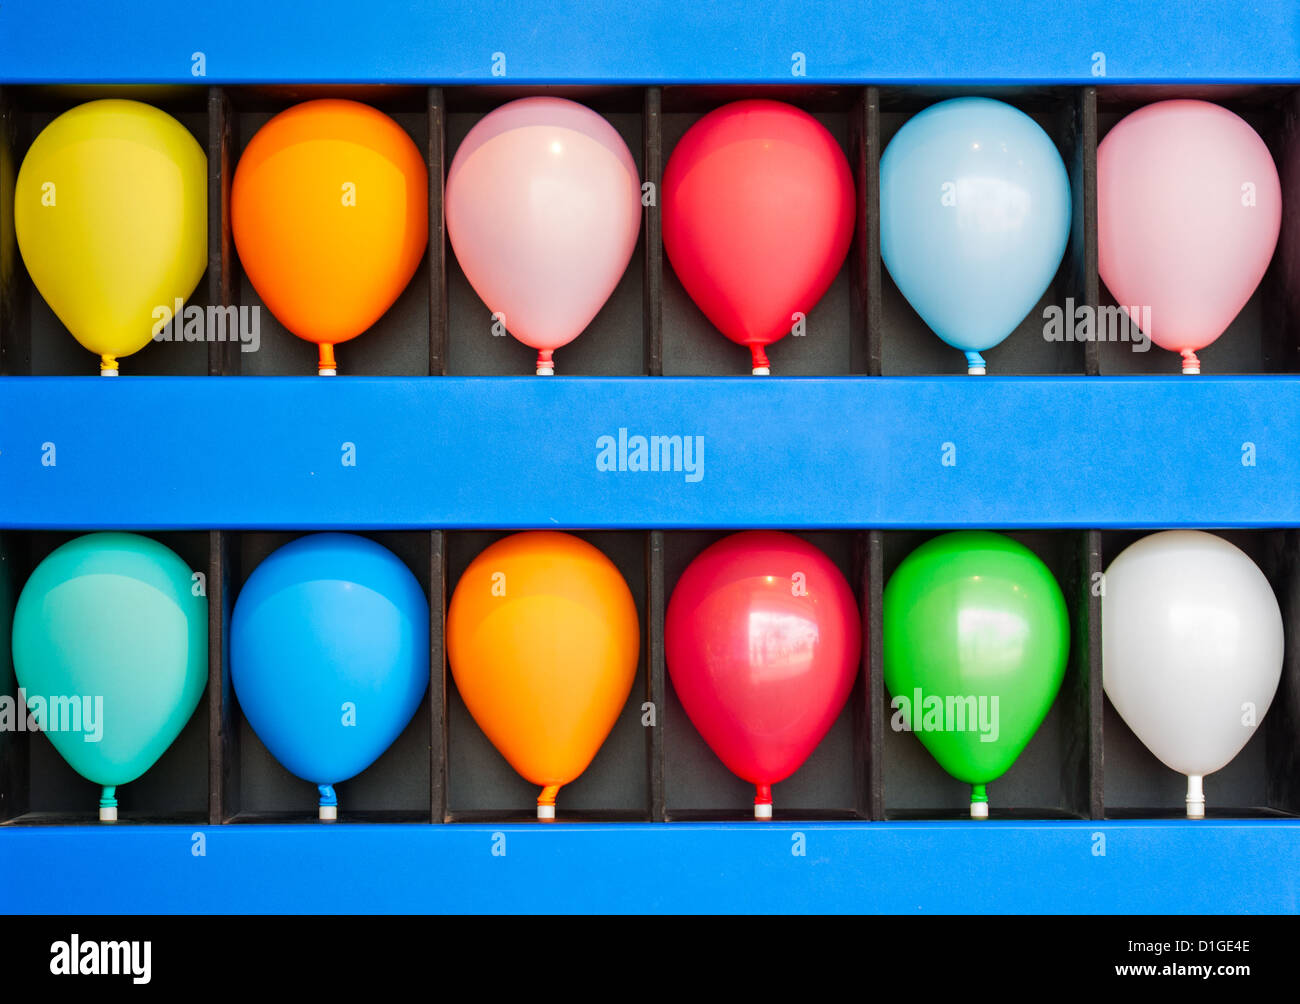 A blue wall case with colorful balloons. Photo is of a boardwalk arcade game. Only the case and balloons are shown. - Stock Image